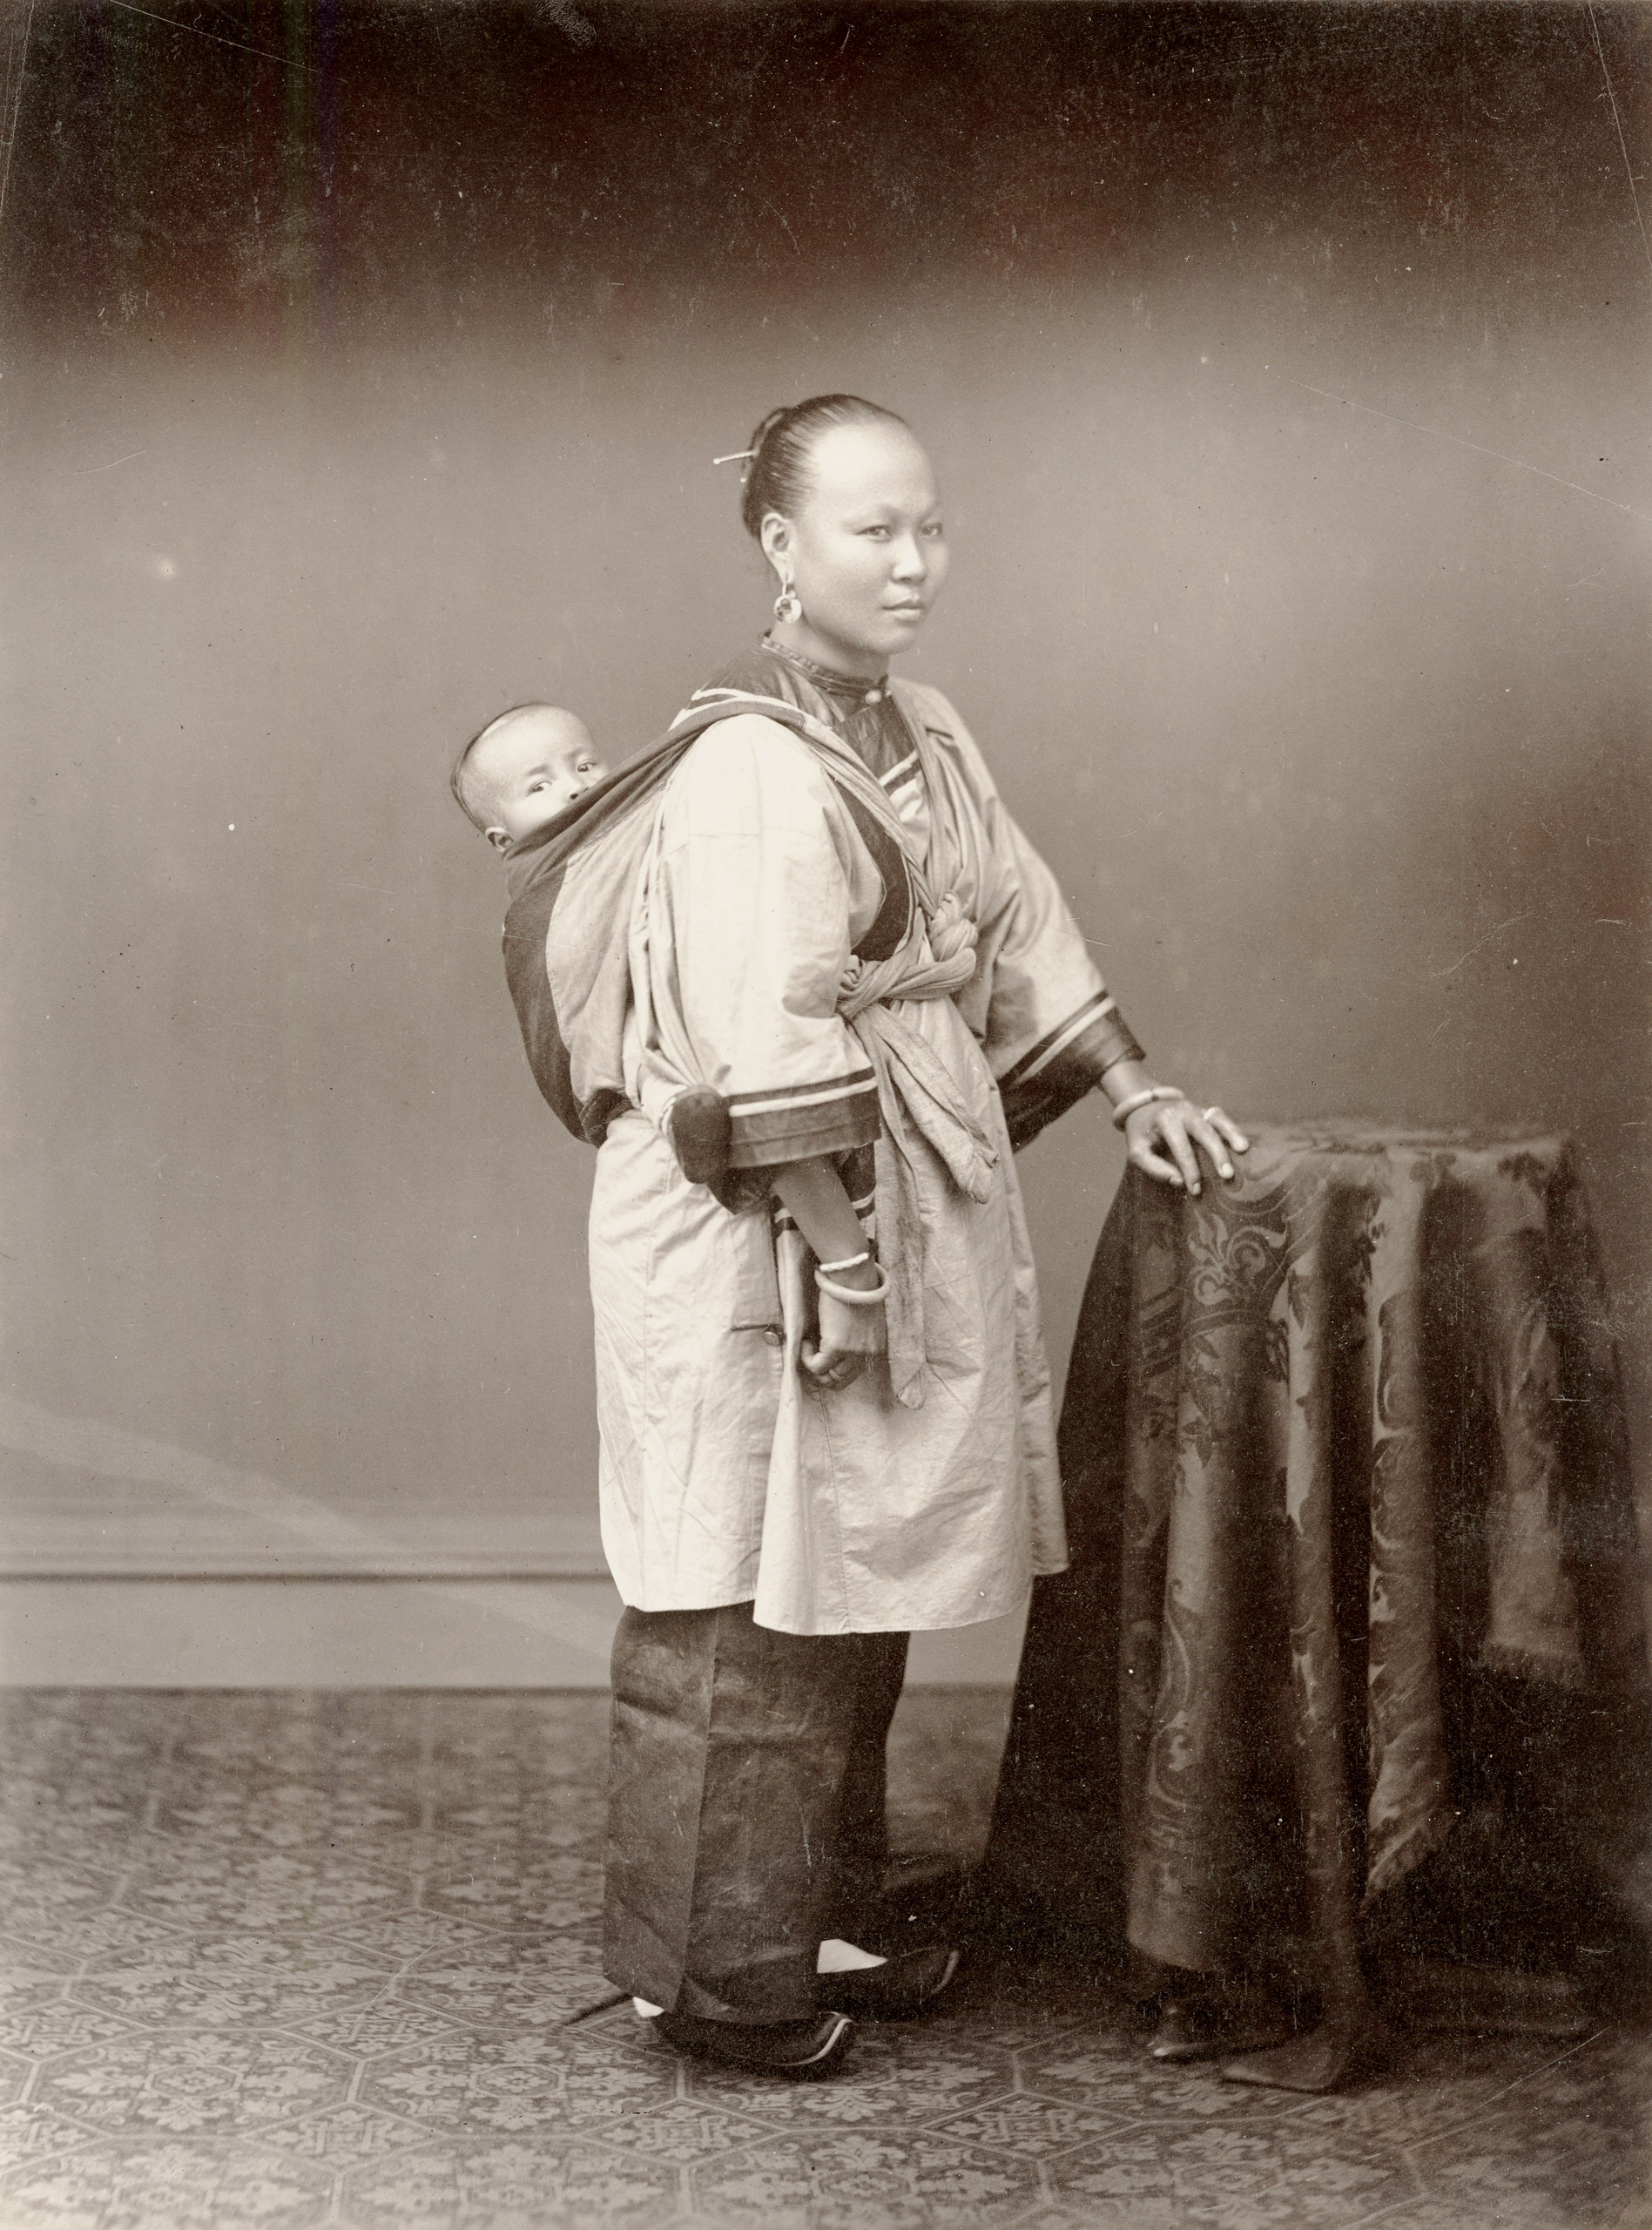 Caption from Stephan Lowentheil Collection. Portrait of a woman carrying a child on her back. Though Pun Lun operated a large and successful studio, most of the photographs attributed to the artist are small carte de visite portraits. This large-format masterpiece from Pun Lun's genre series is a rare survival.